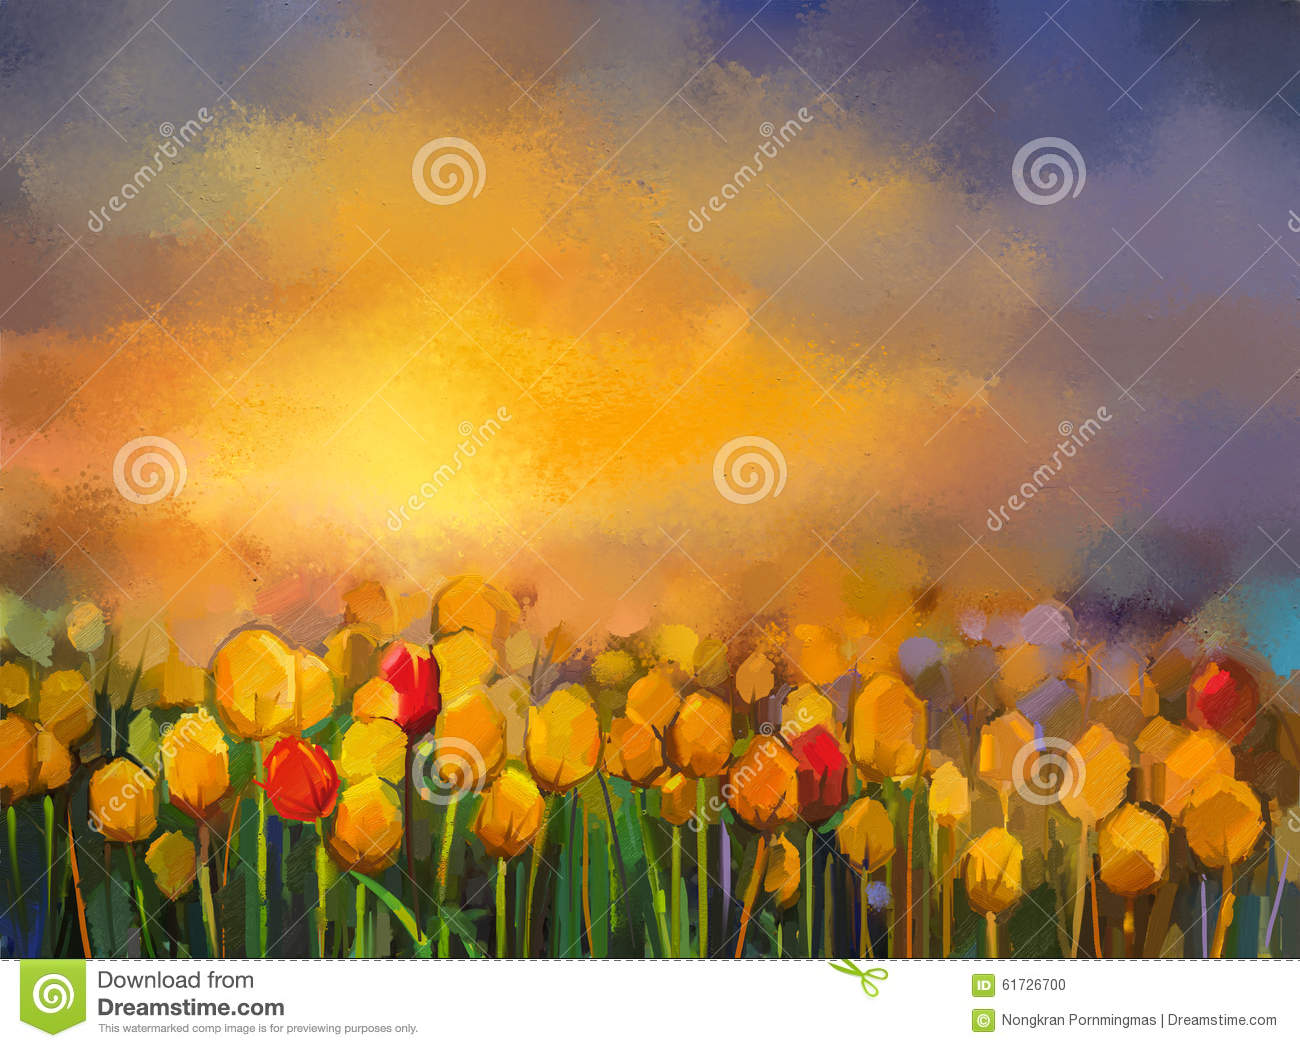 Oil Painting Yellow And Red Tulips Flowers Field At Sunset Stock